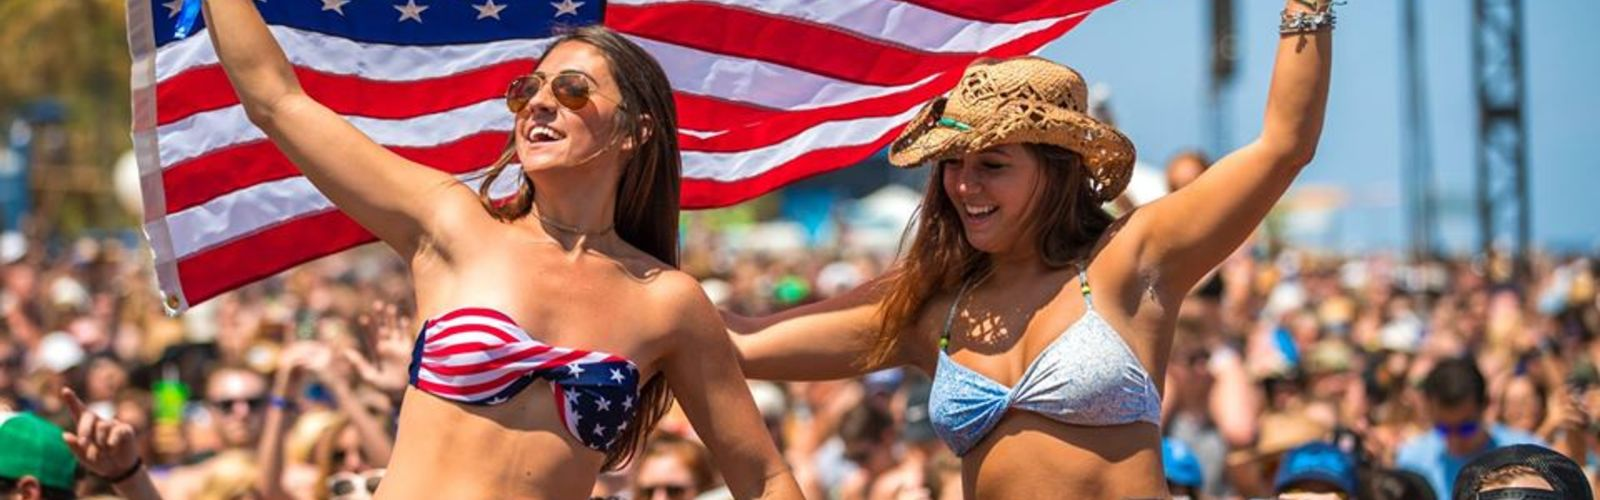 The Best Spring Break Music Festivals in the USA